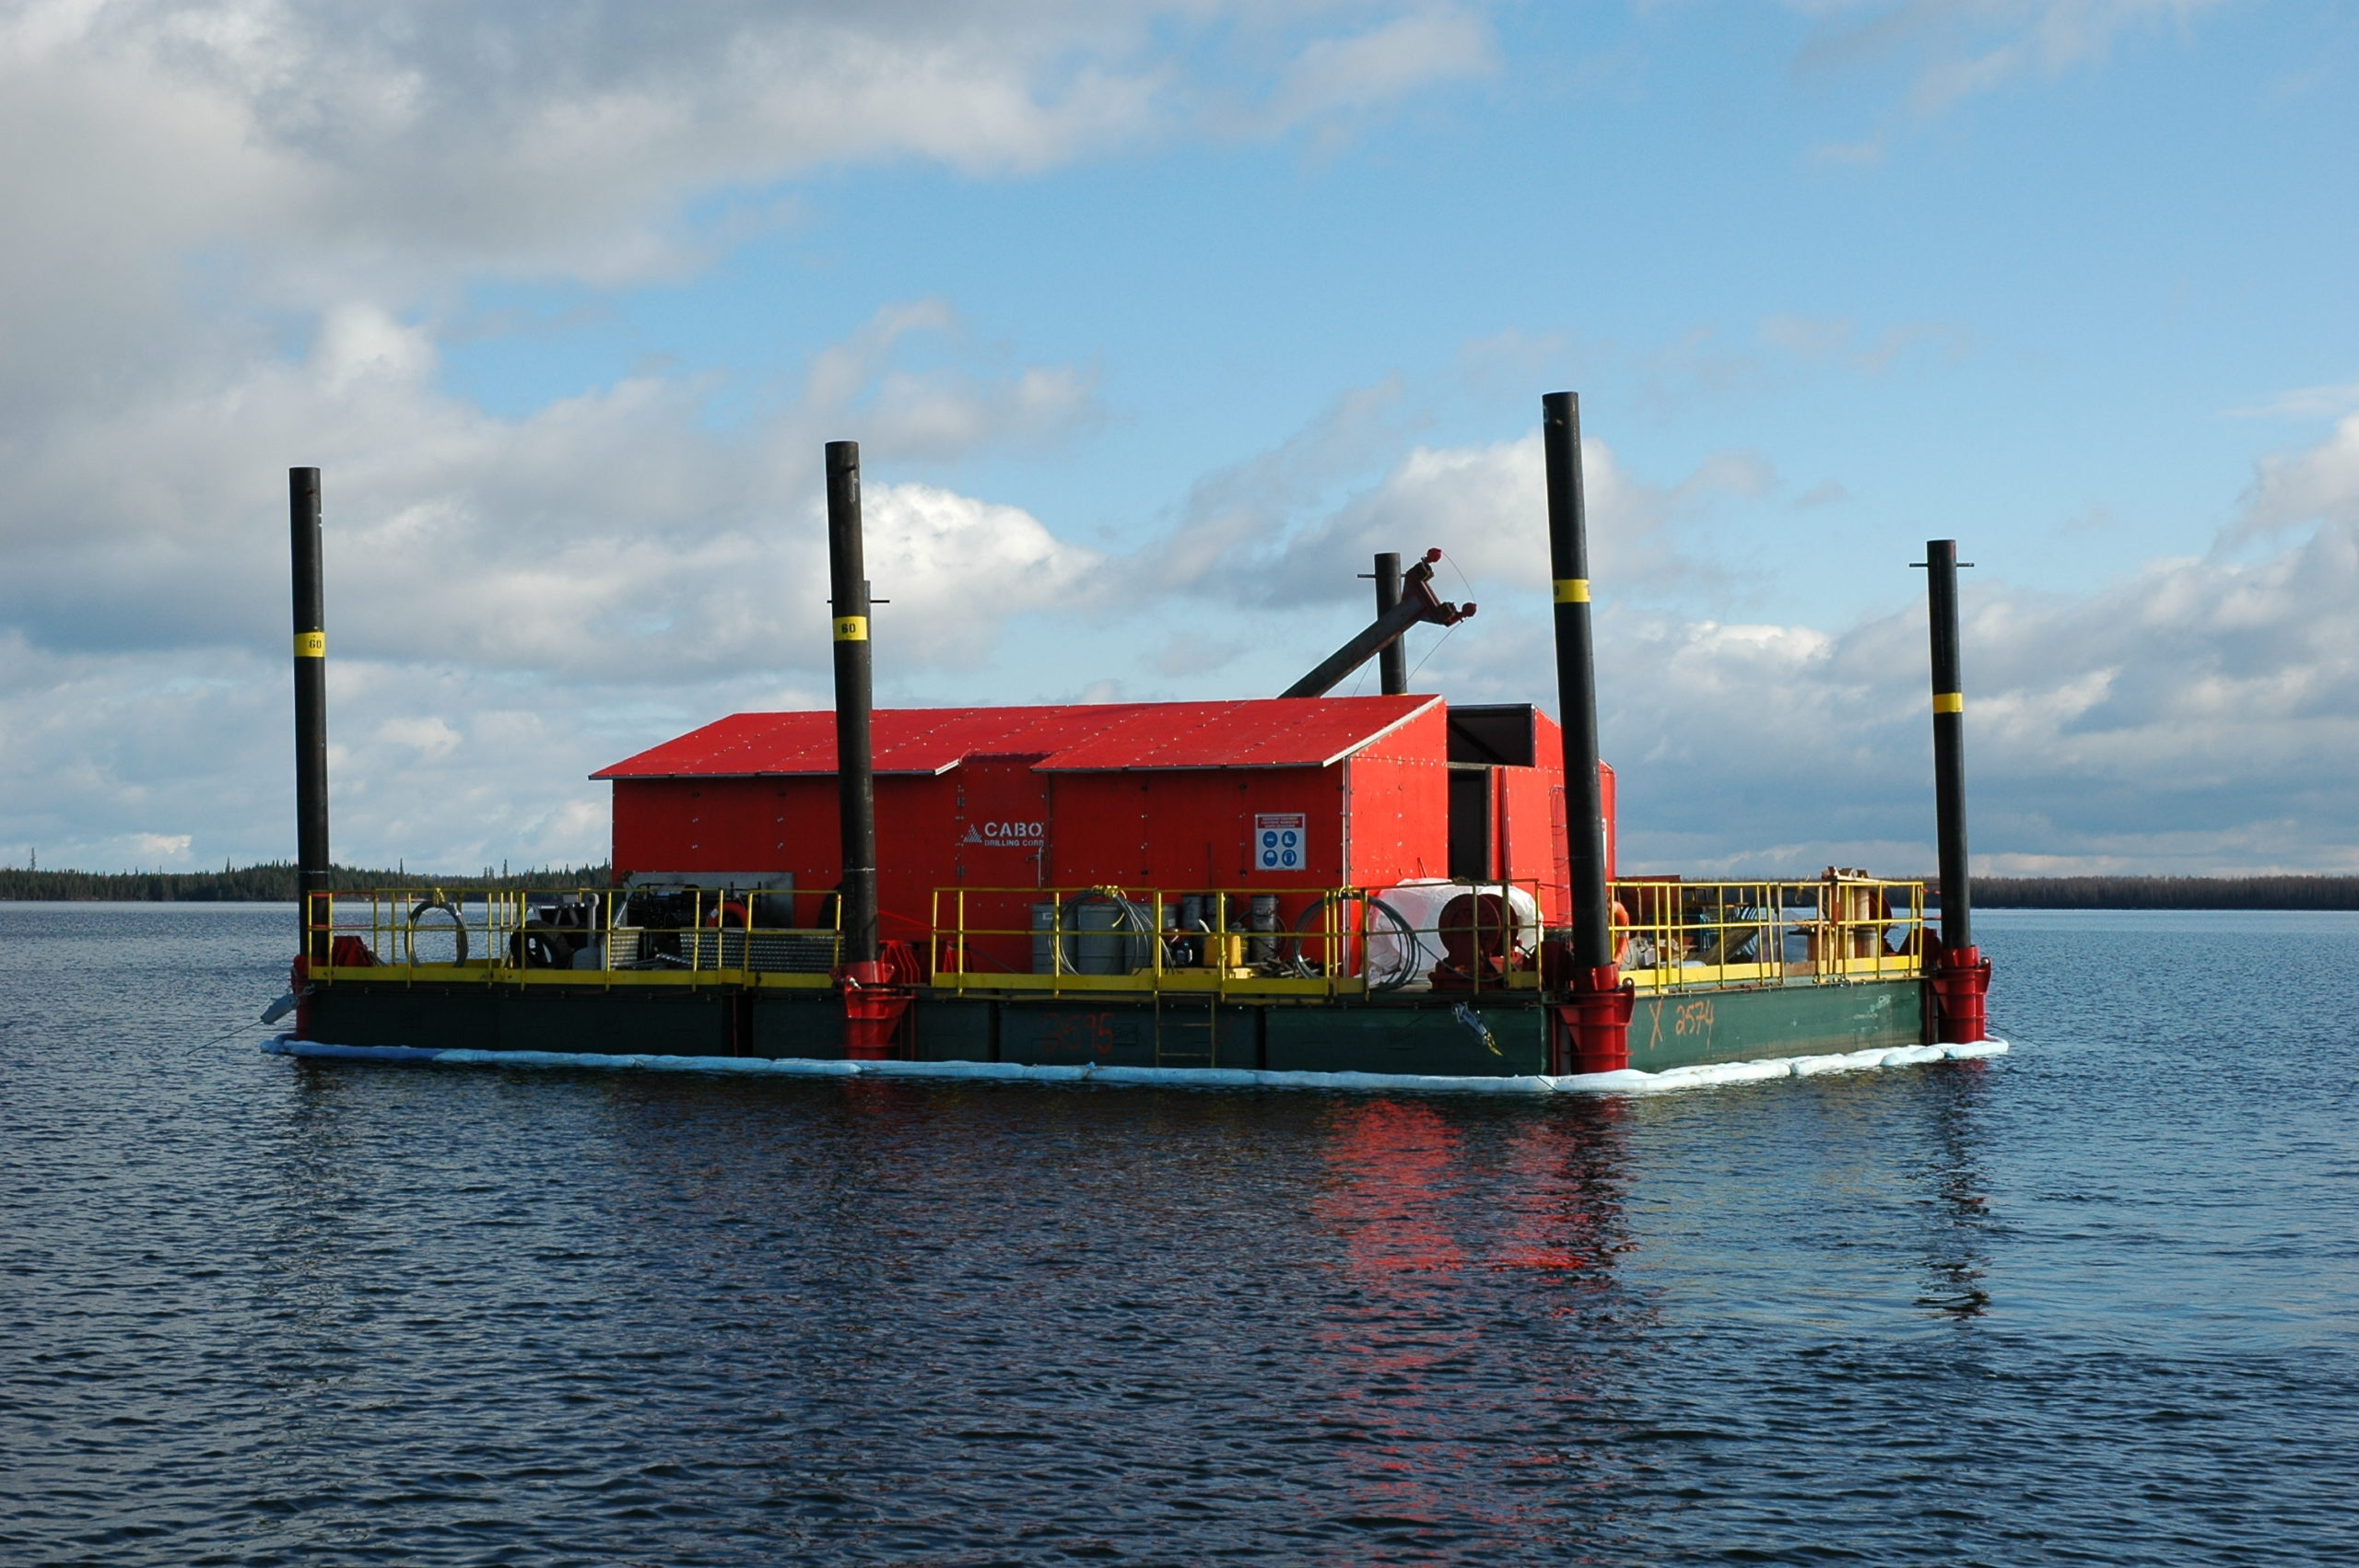 Mineral exploration drilling barge design and fabricated by Rector used in Northwestern Ontario